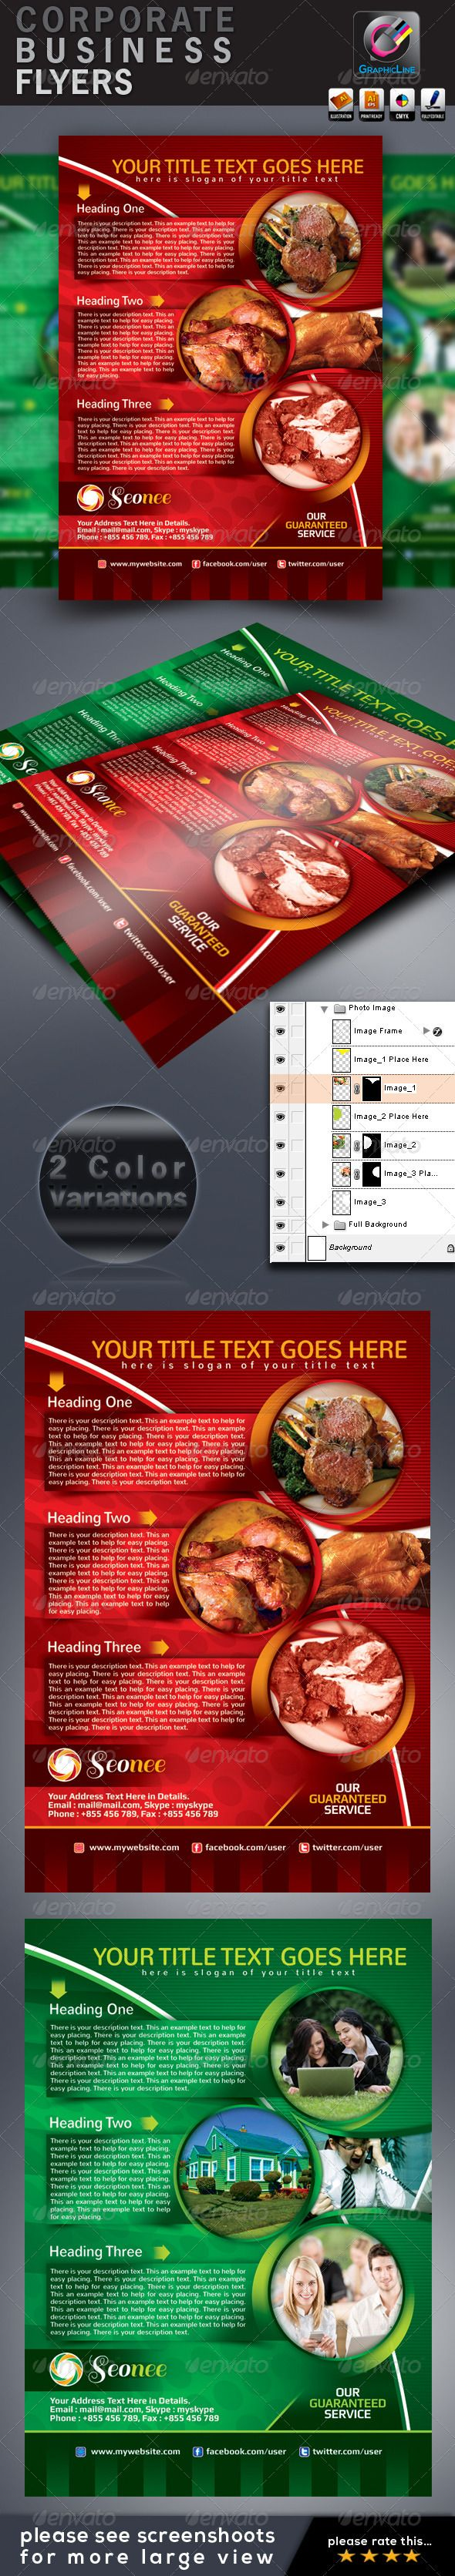 Color printing bu - Seonee_corporate Business Flyers Adds